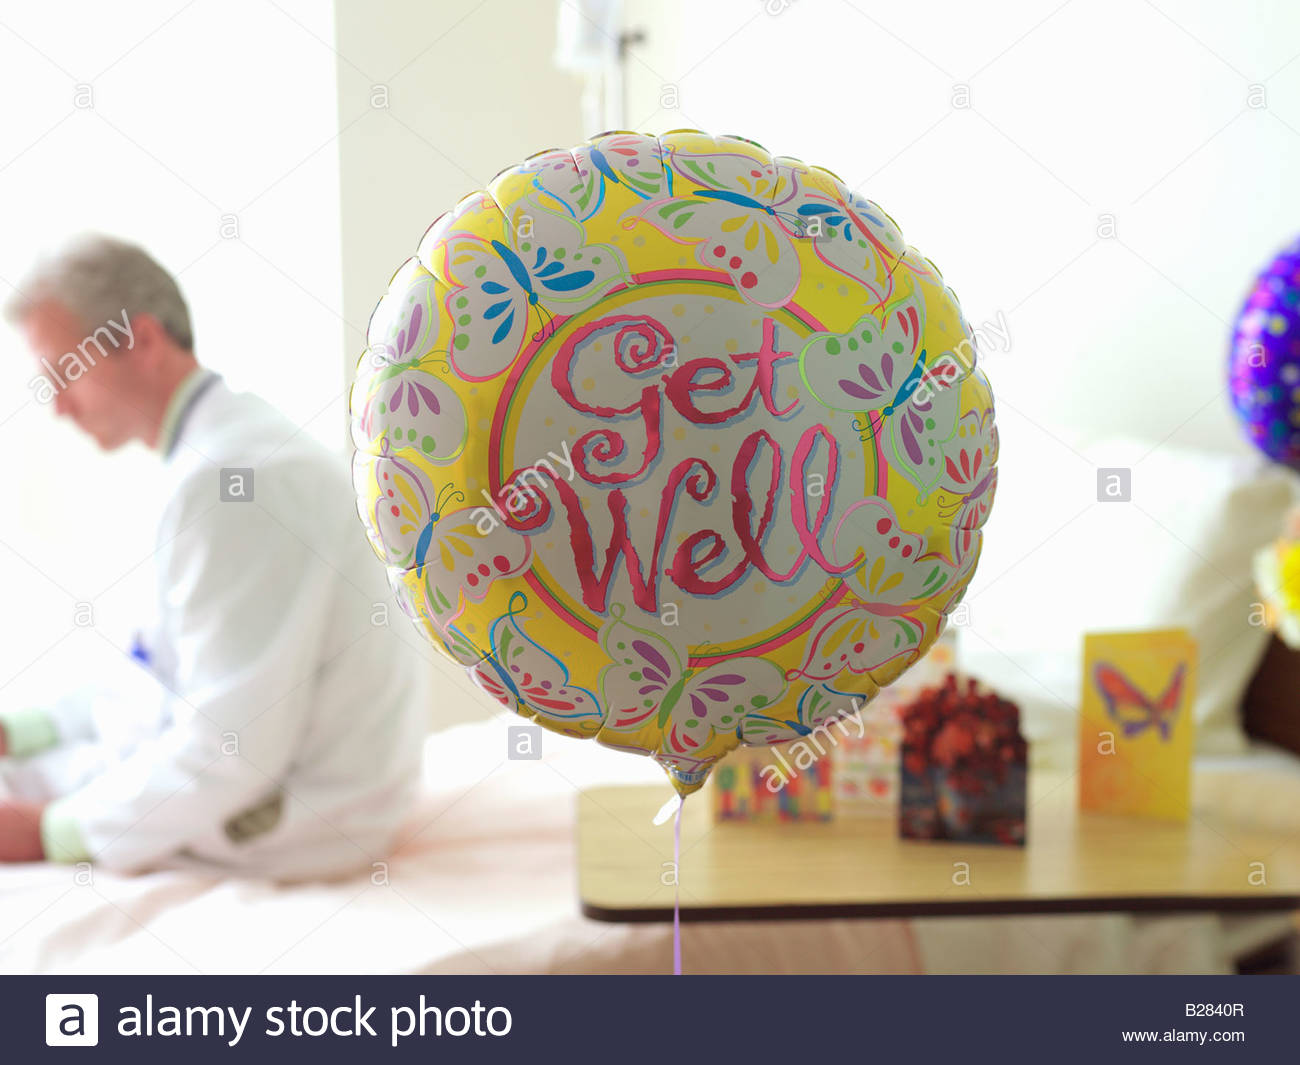 'Get Well' balloon in hospital, doctor in background - Stock Image